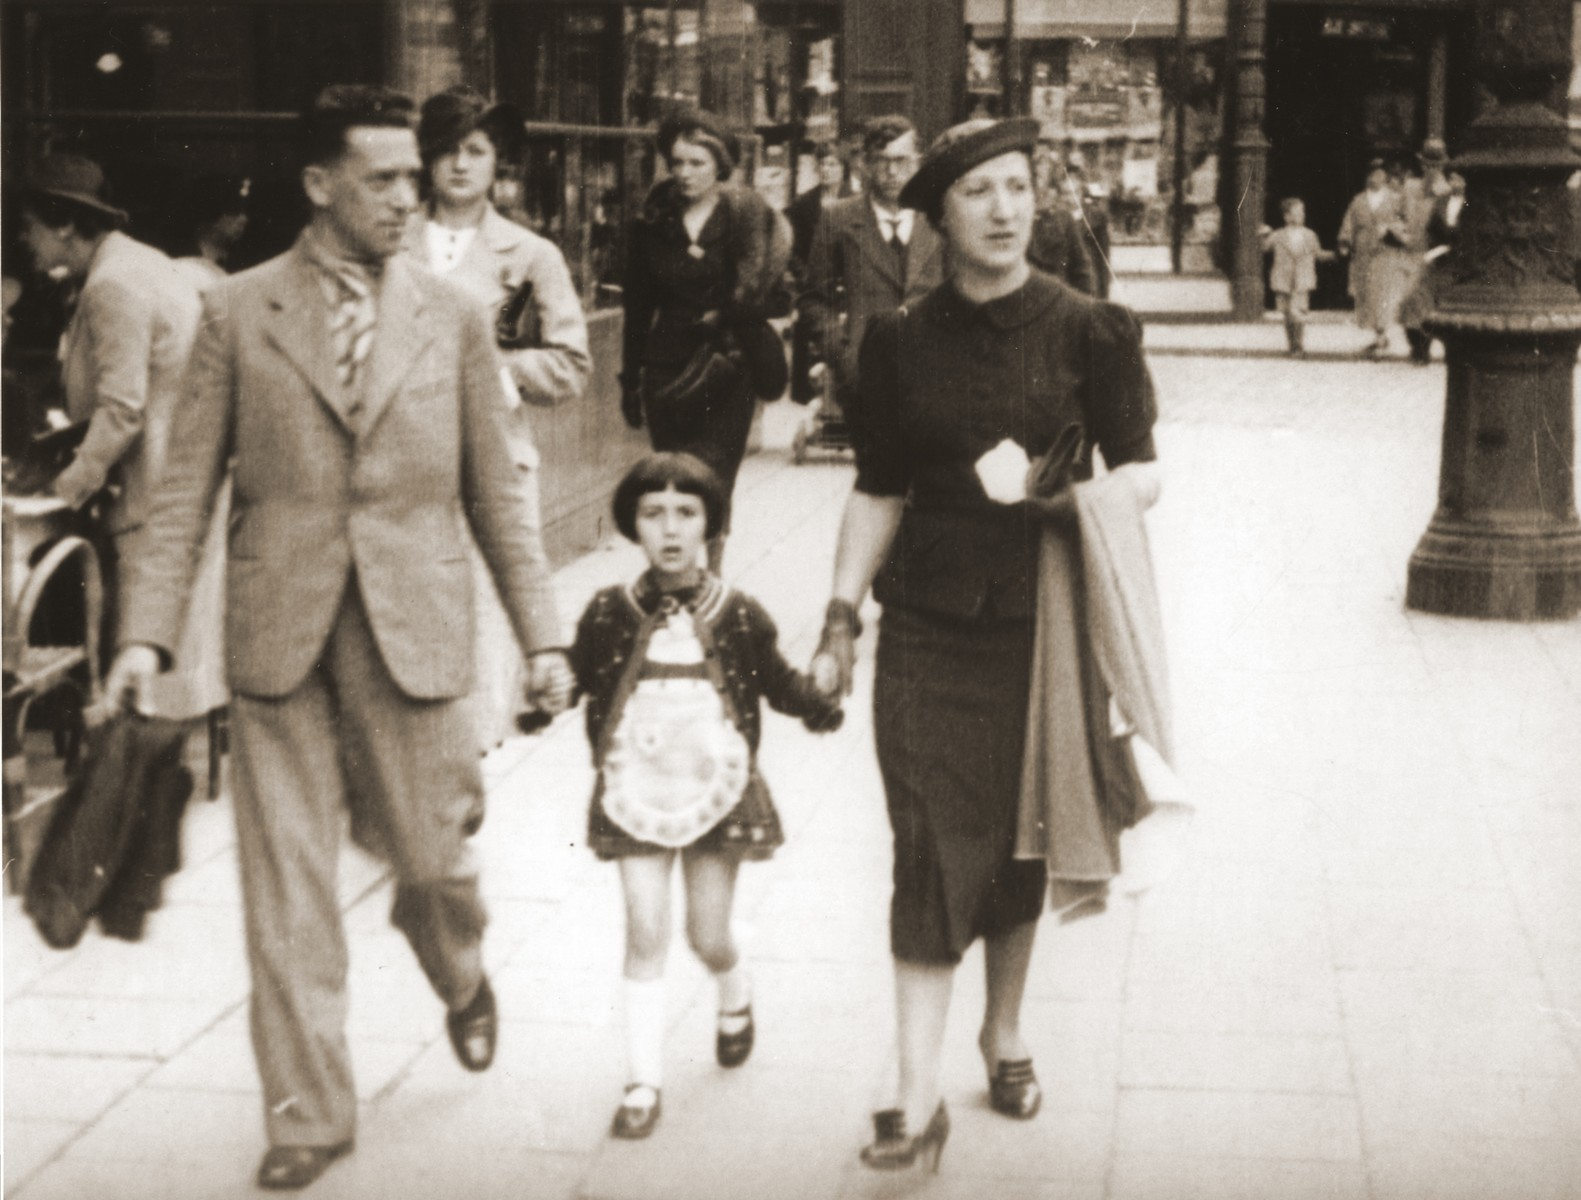 Michael and Manja Schadur stroll along a commercial street in Antwerp with their daughter. Benita.